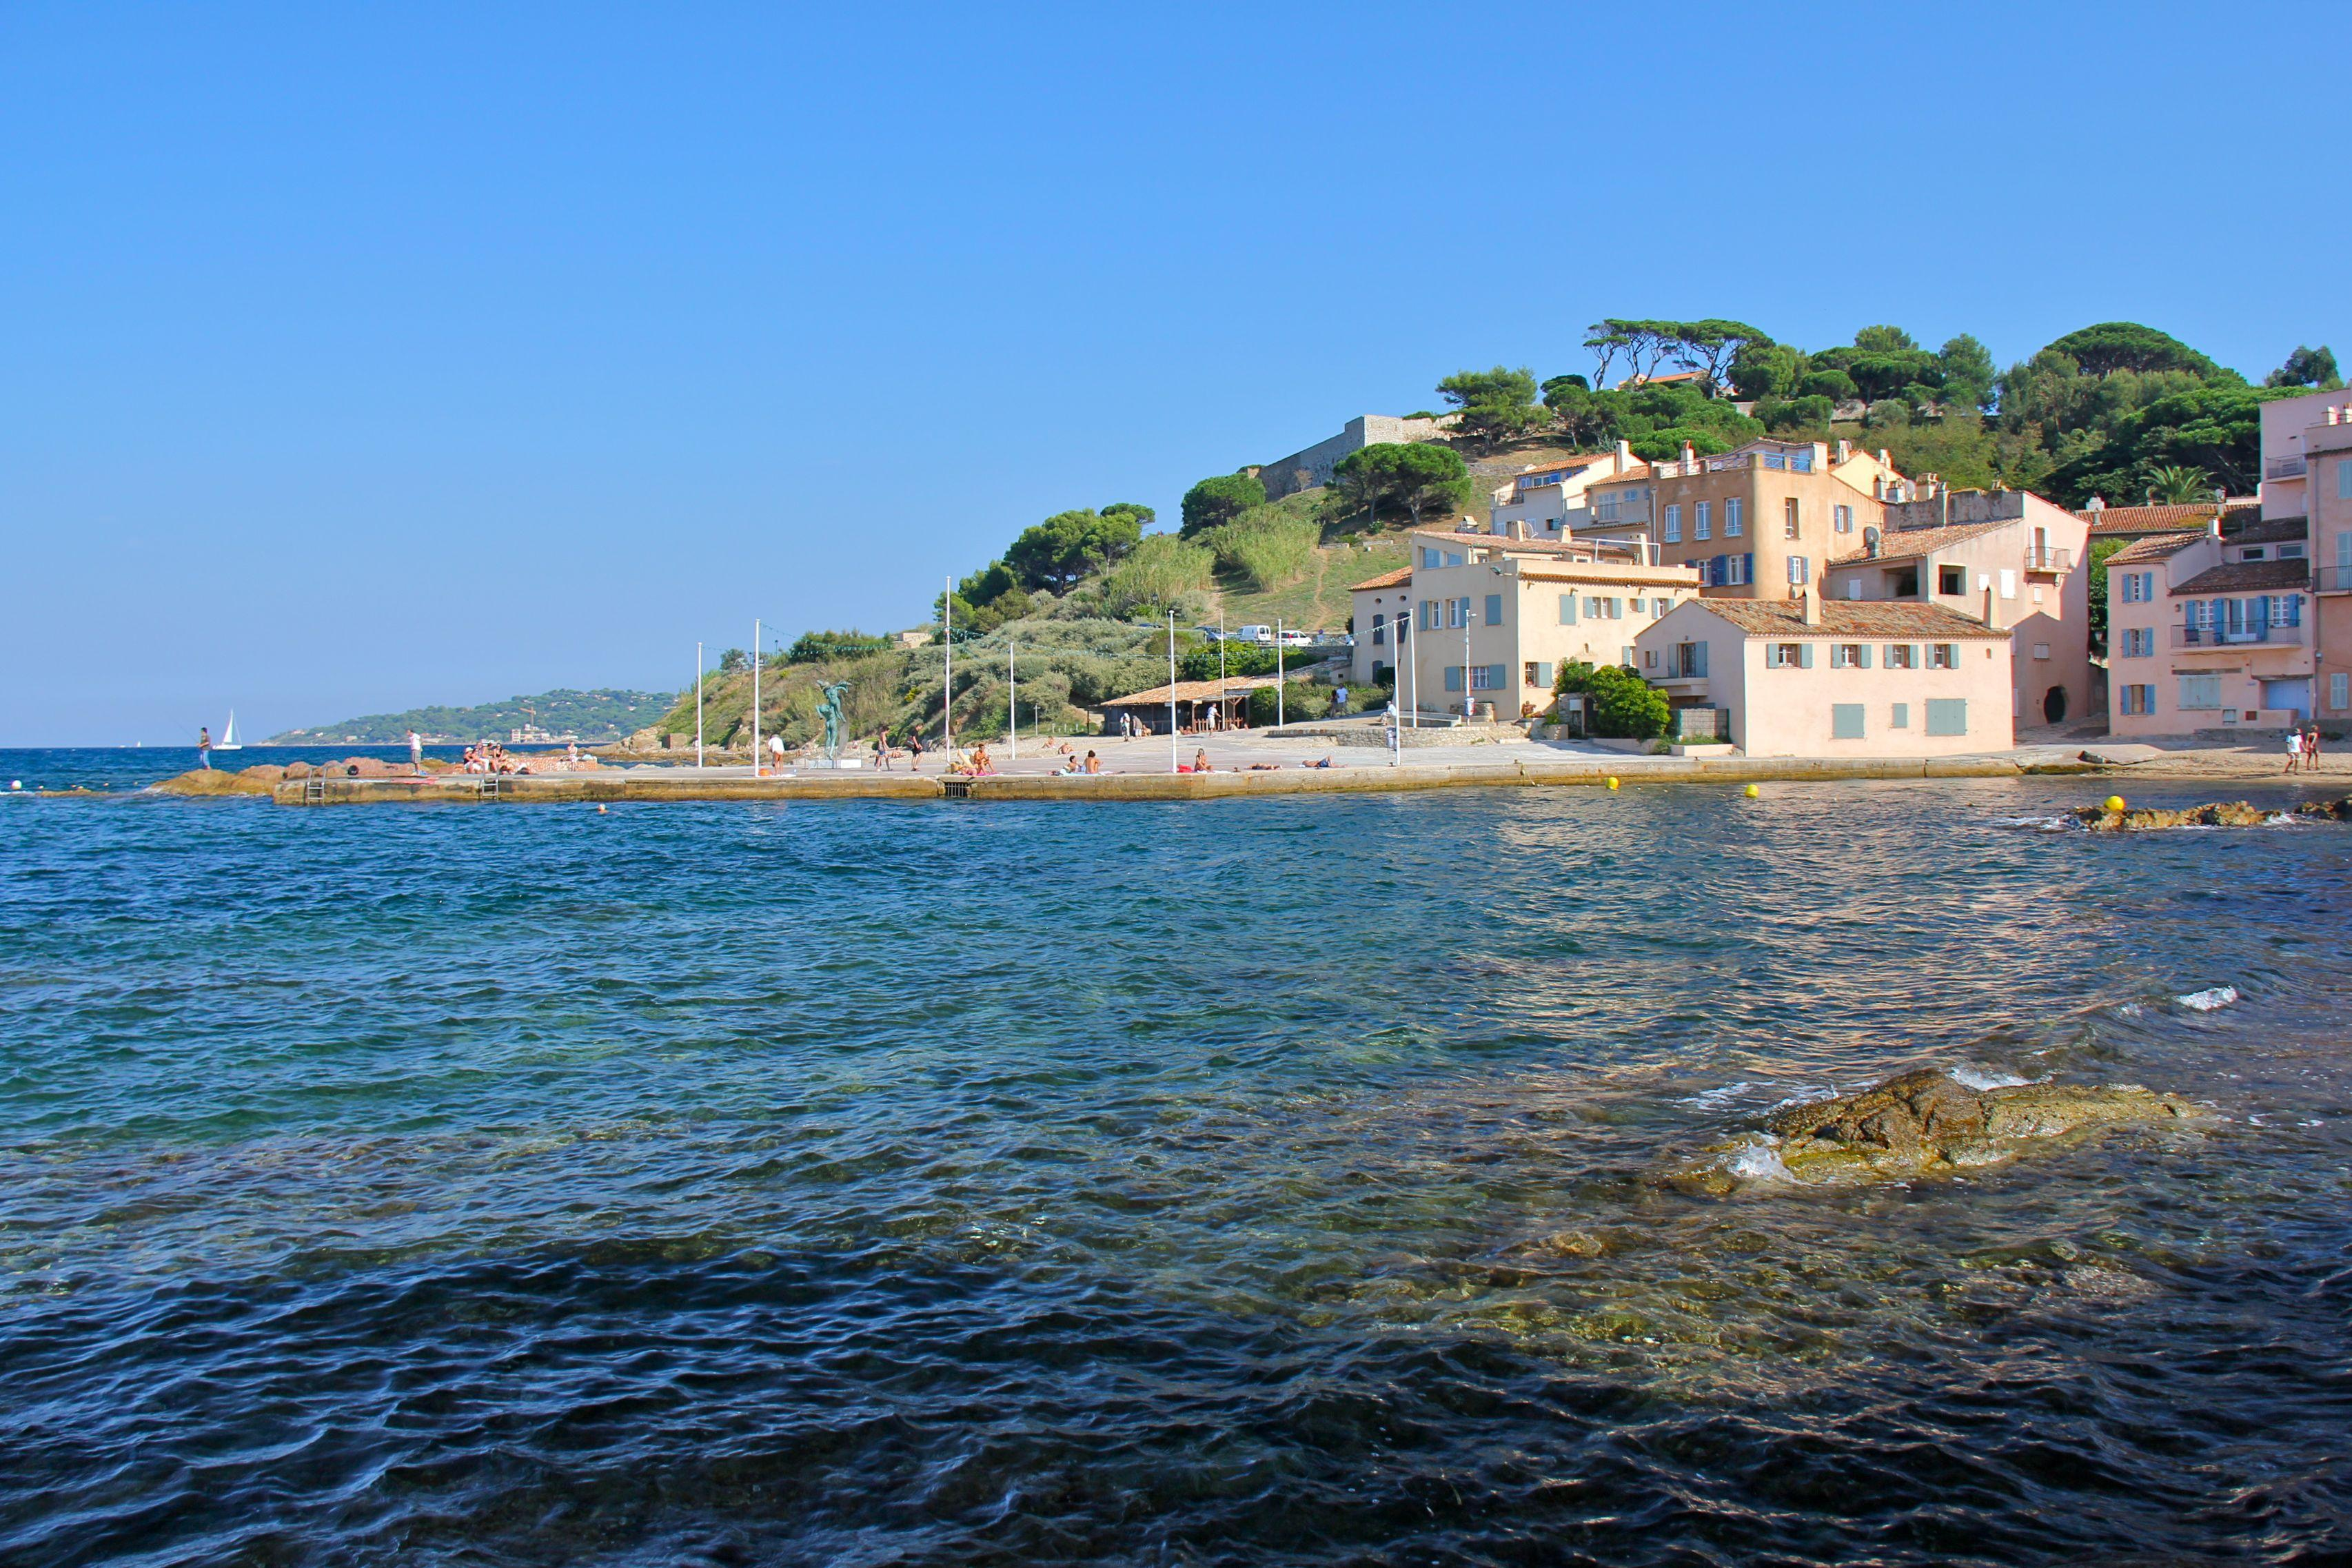 St Tropez Live Wallpaper for Android   APK Download 3412x2275